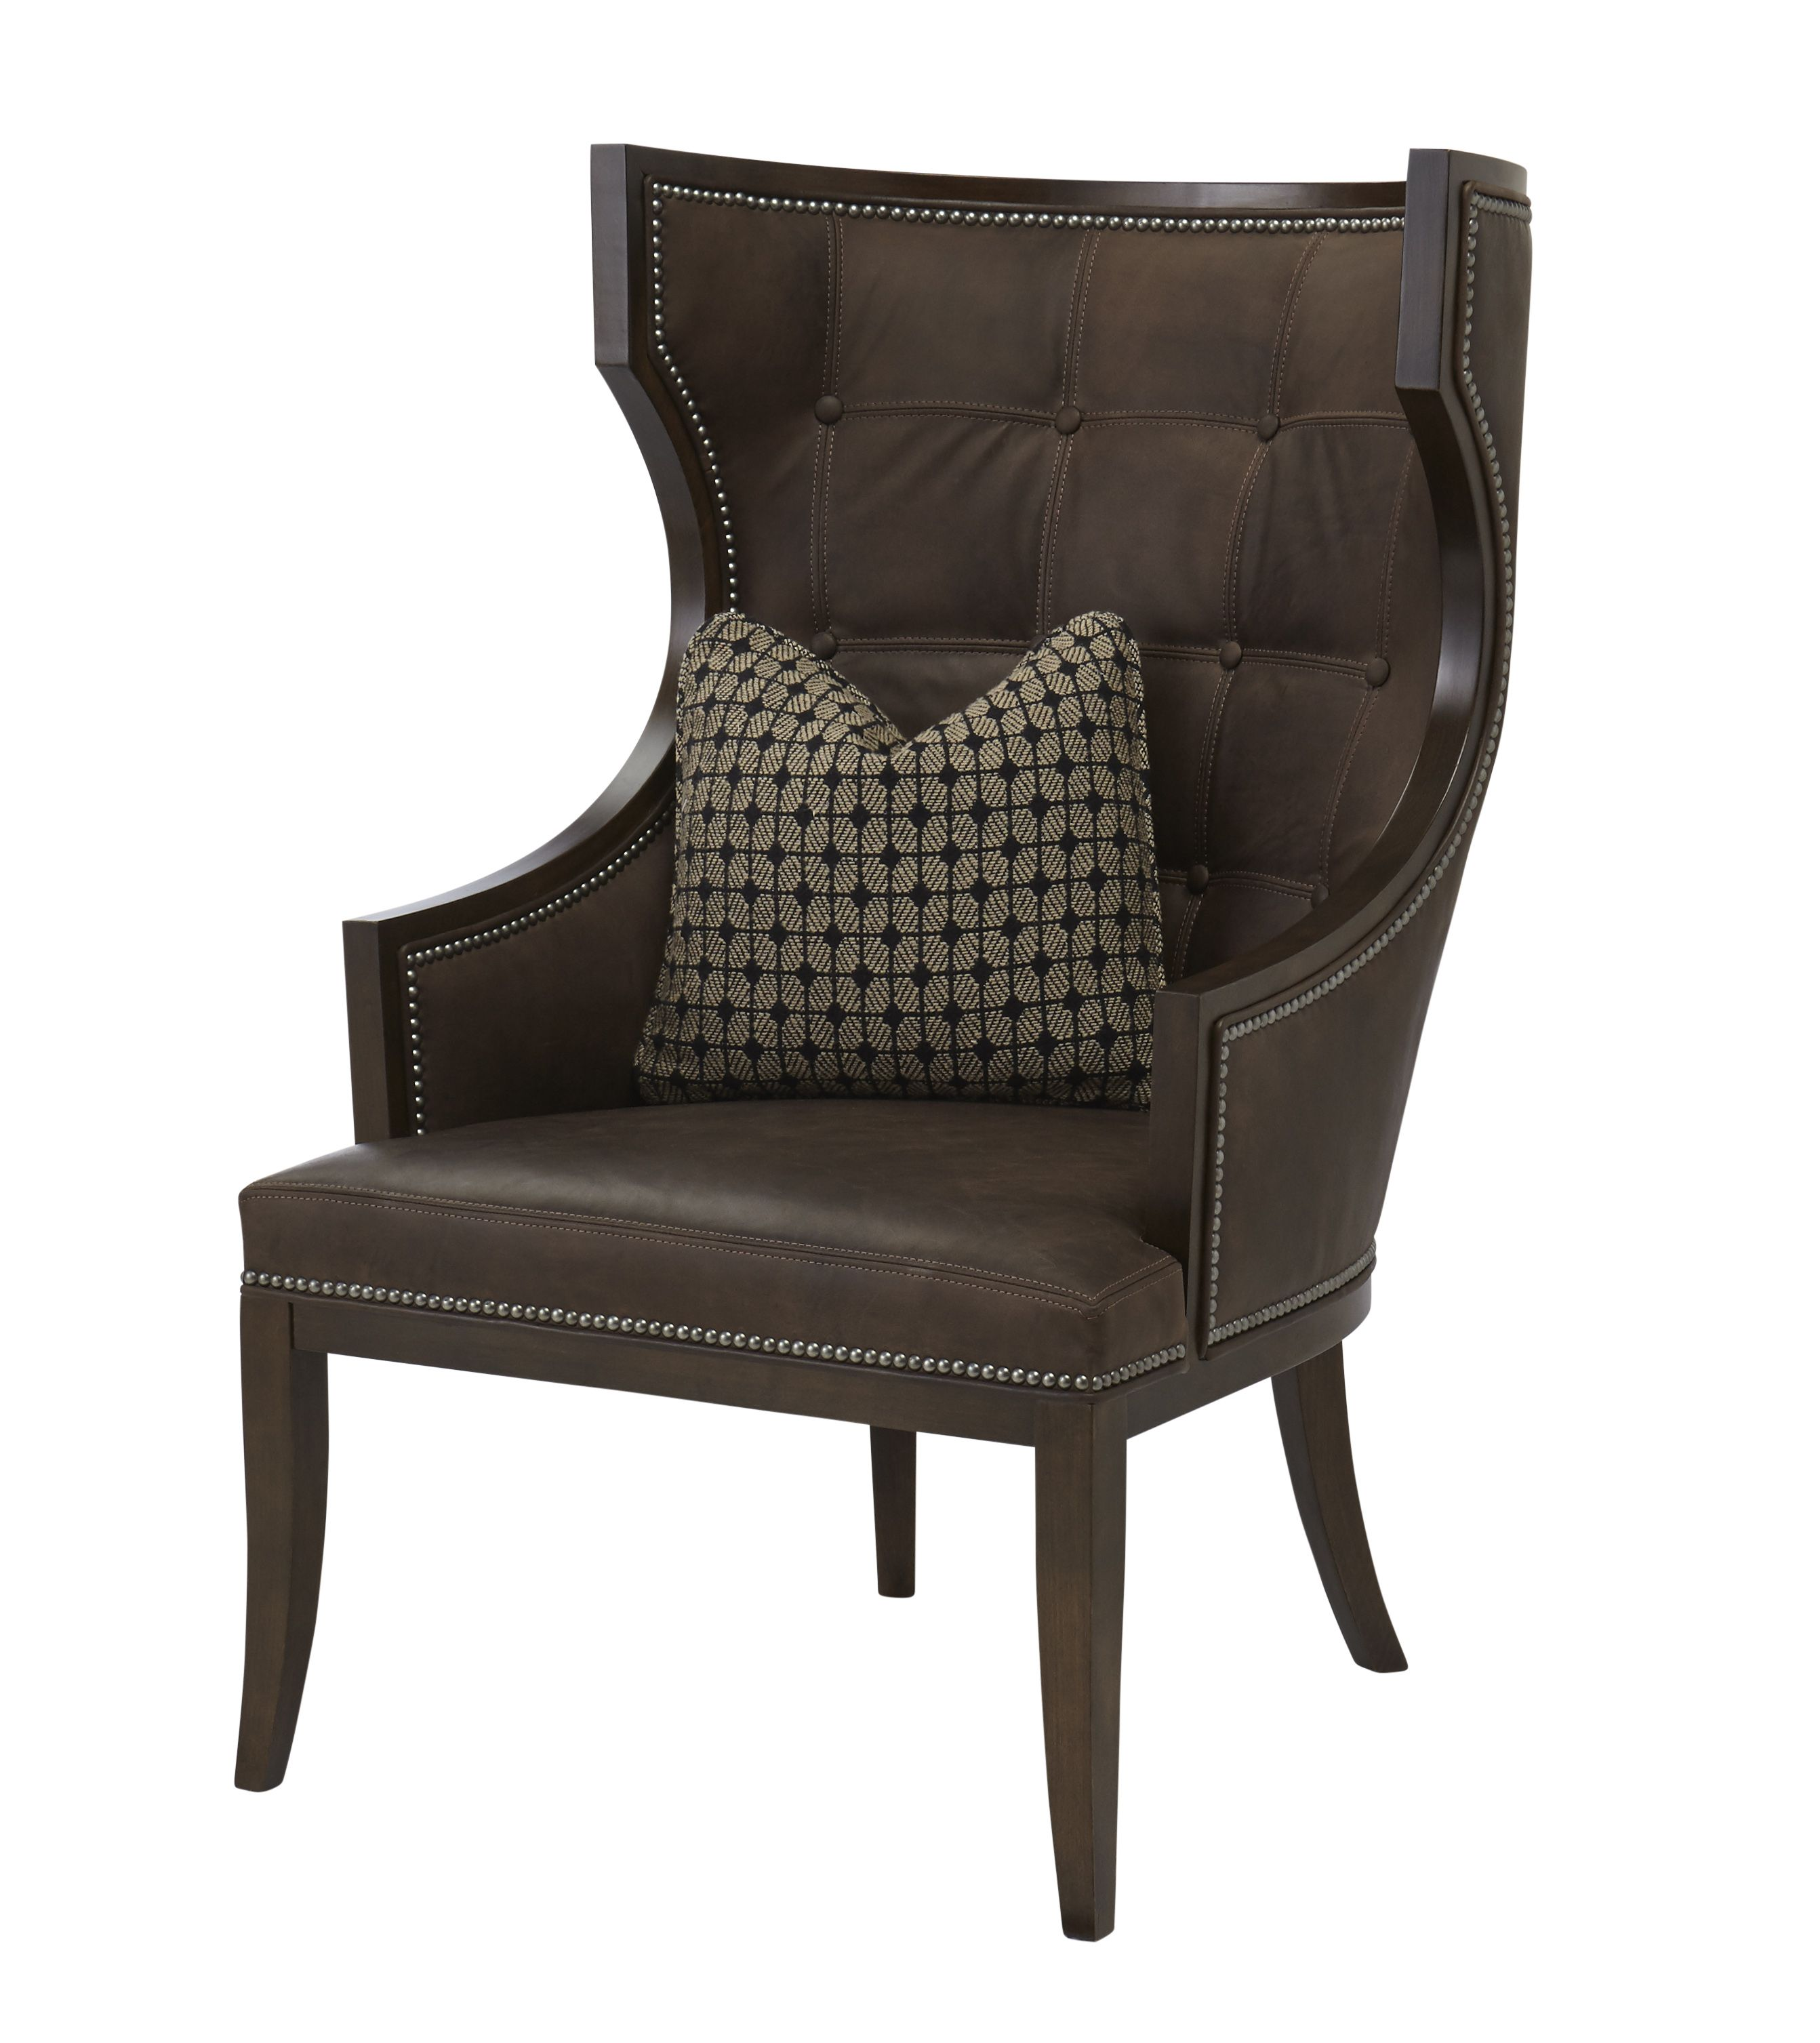 Massoud Hugo Western Chair Western Accent Chairs   Contemporary Western  Design In Fudge Brown Leather With